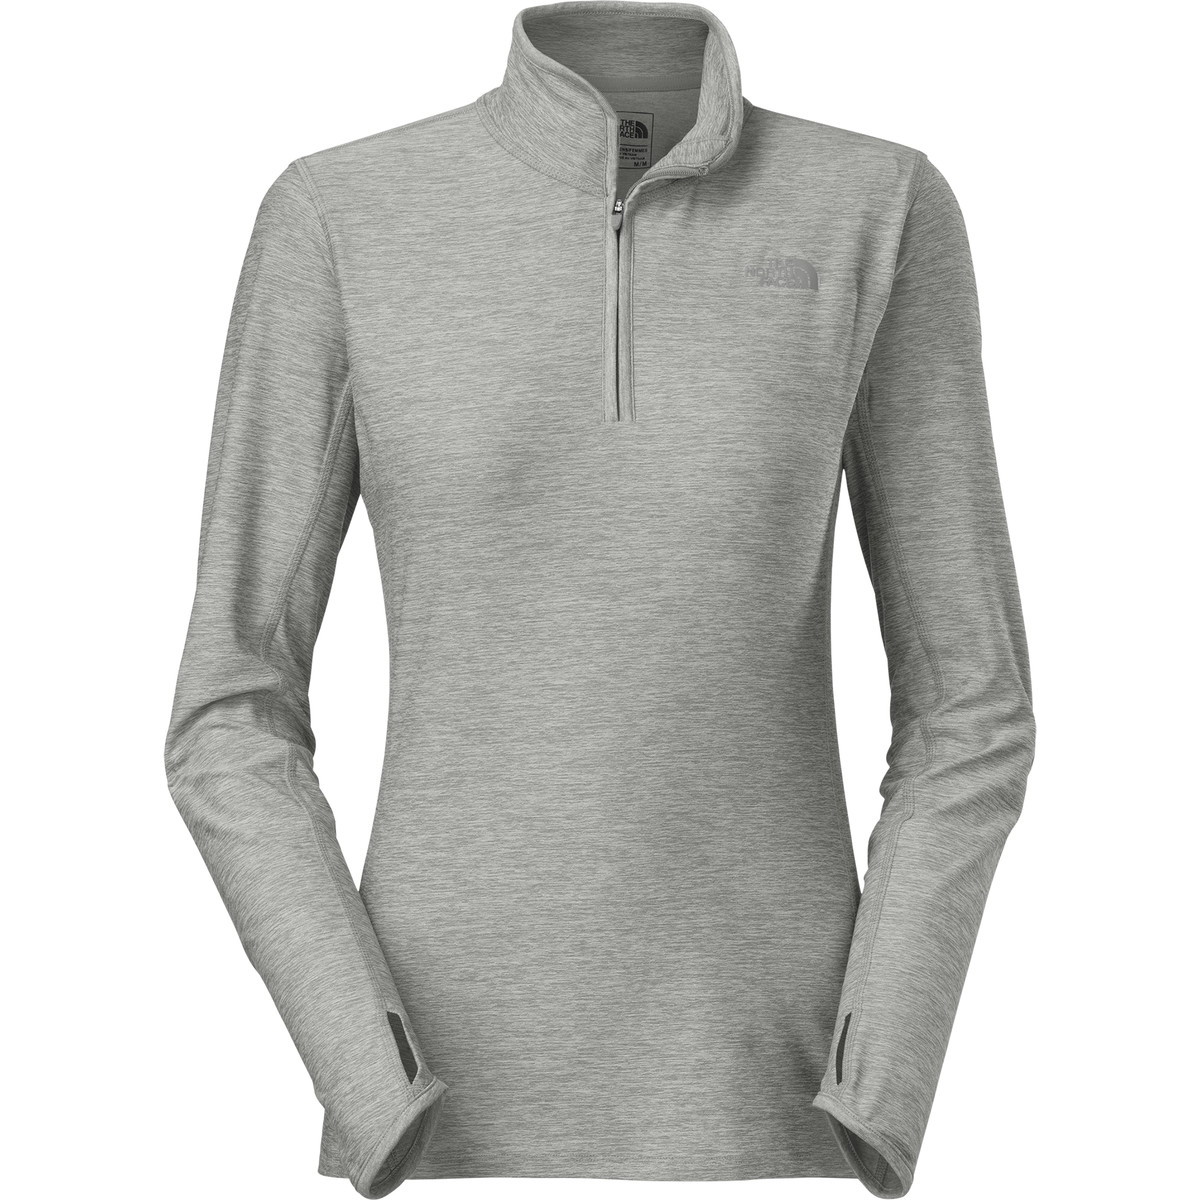 The North Face Motivation 1/4 Zip